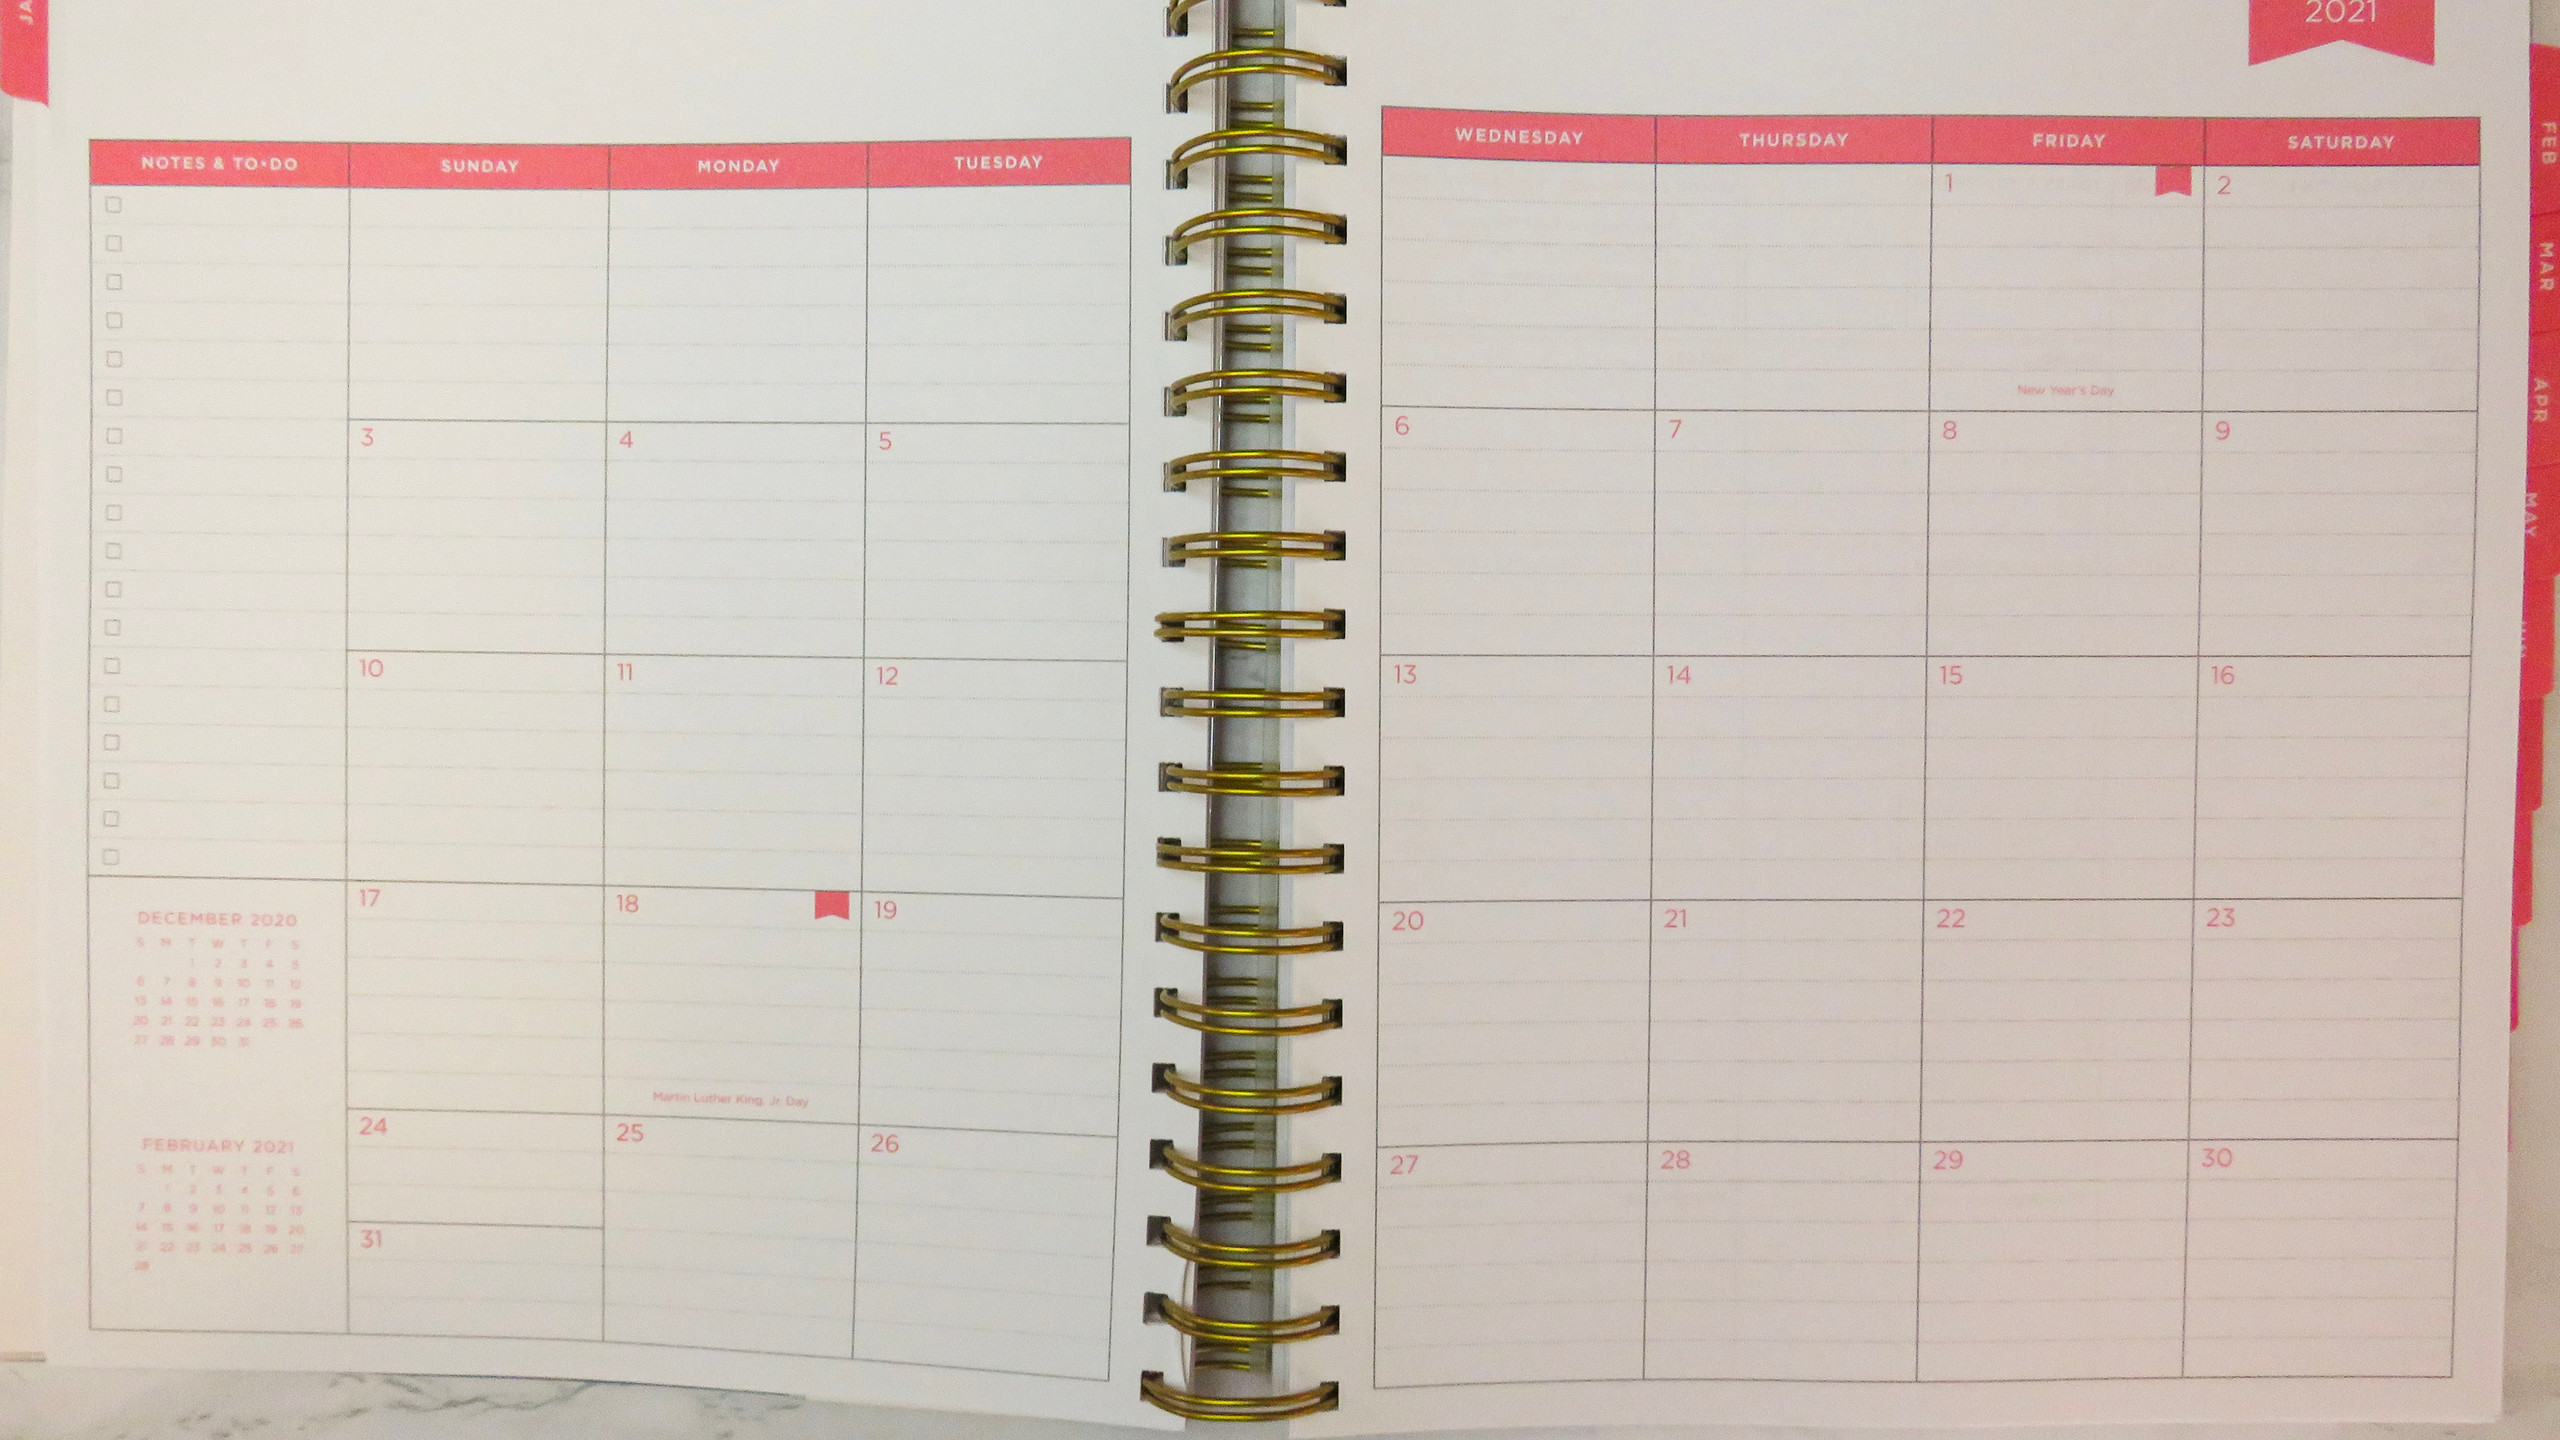 Monthly calendar view in Day Designer